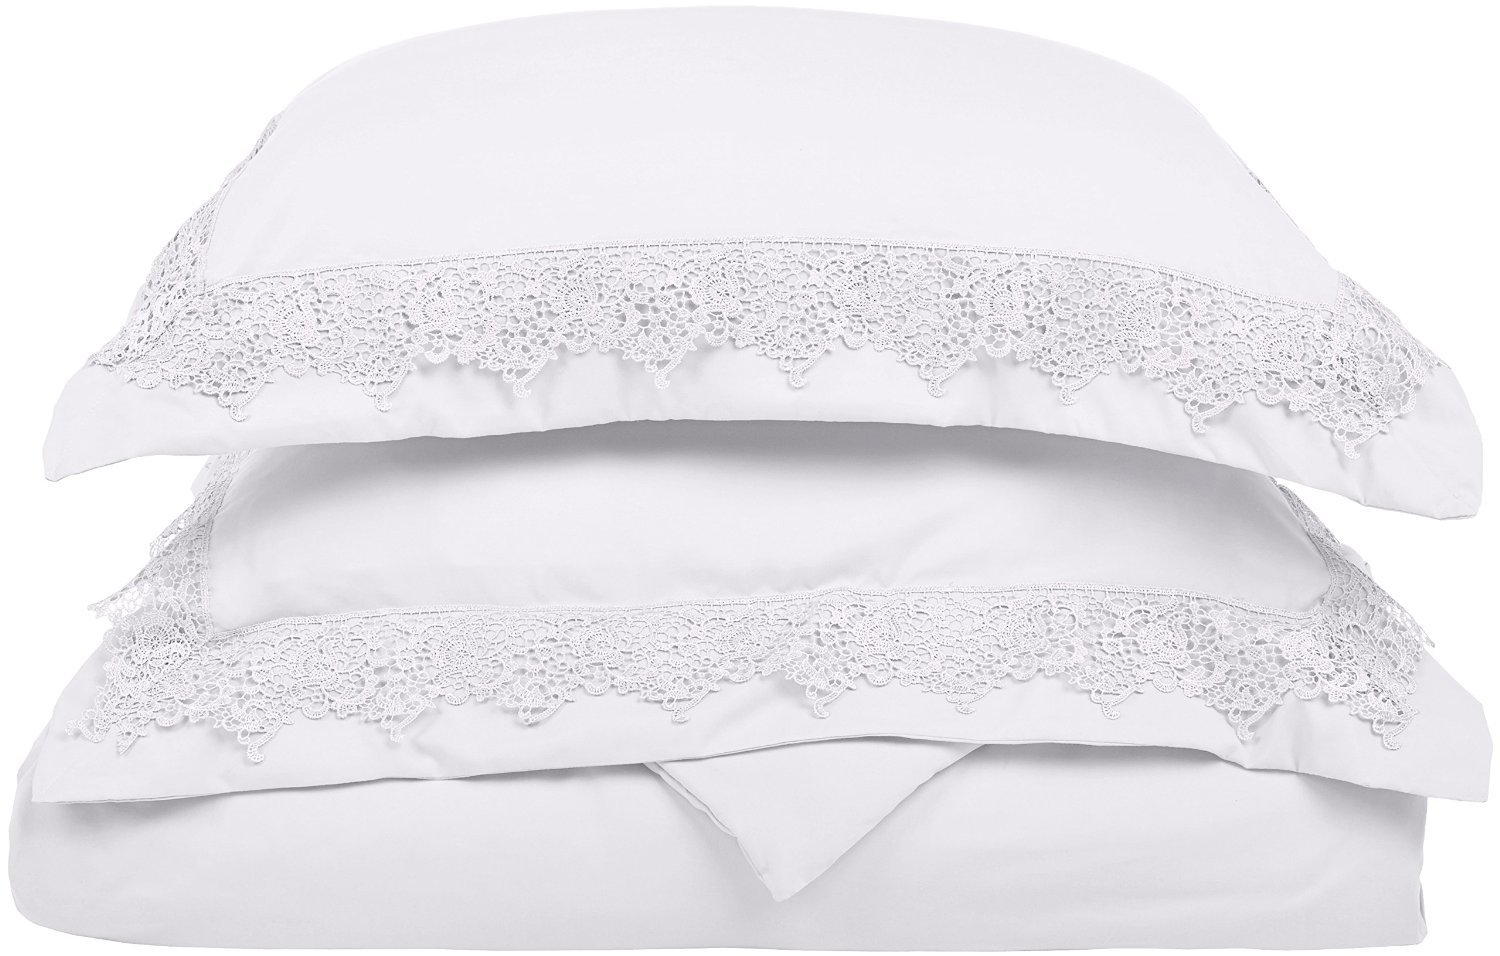 Super Soft Light Weight, 100% Brushed Microfiber, Full/Queen, Wrinkle Resistant, White Duvet Set with Regal Lace Pillowshams in Gift Box